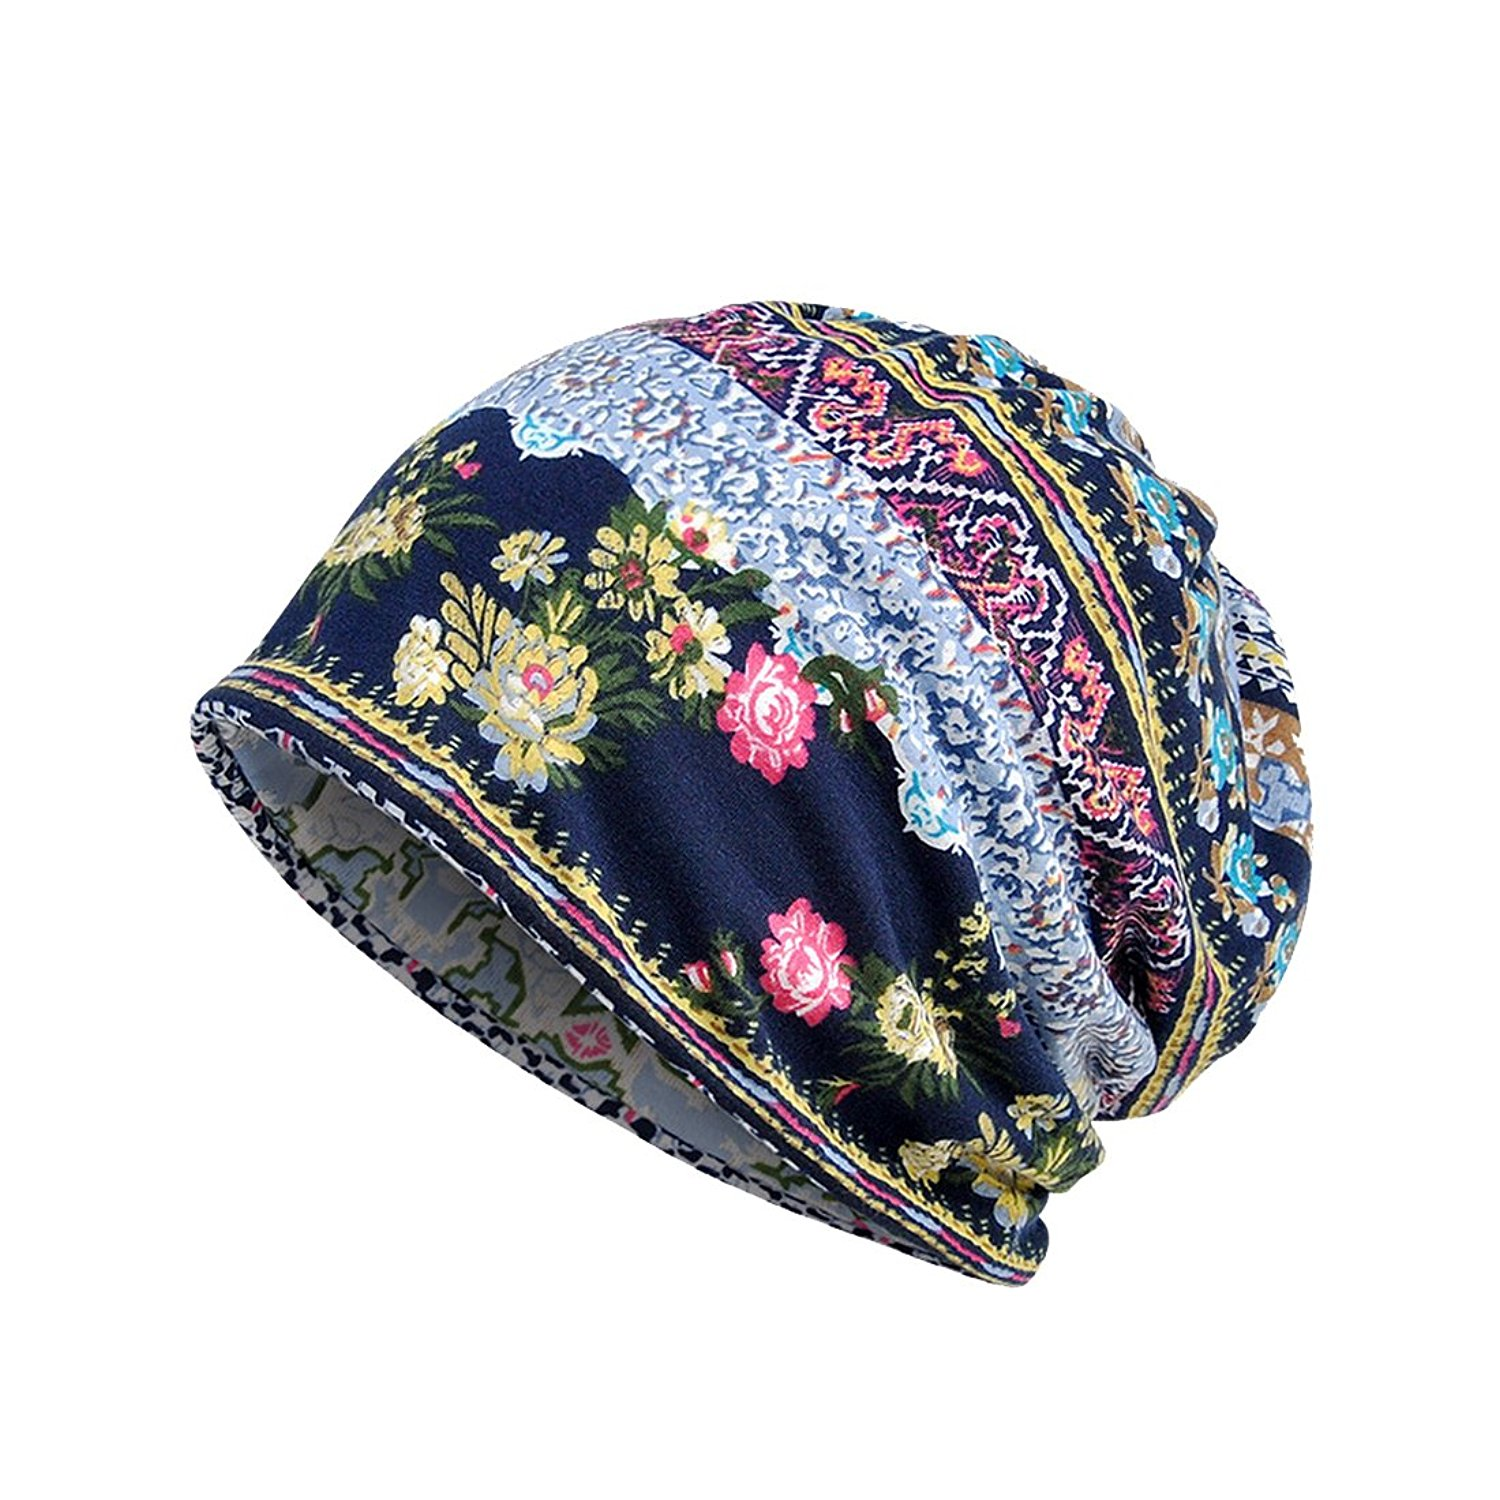 Chemo Cap Womens Soft Printed Beanie Sleep Turban Hat Headwear for Cancer Patients